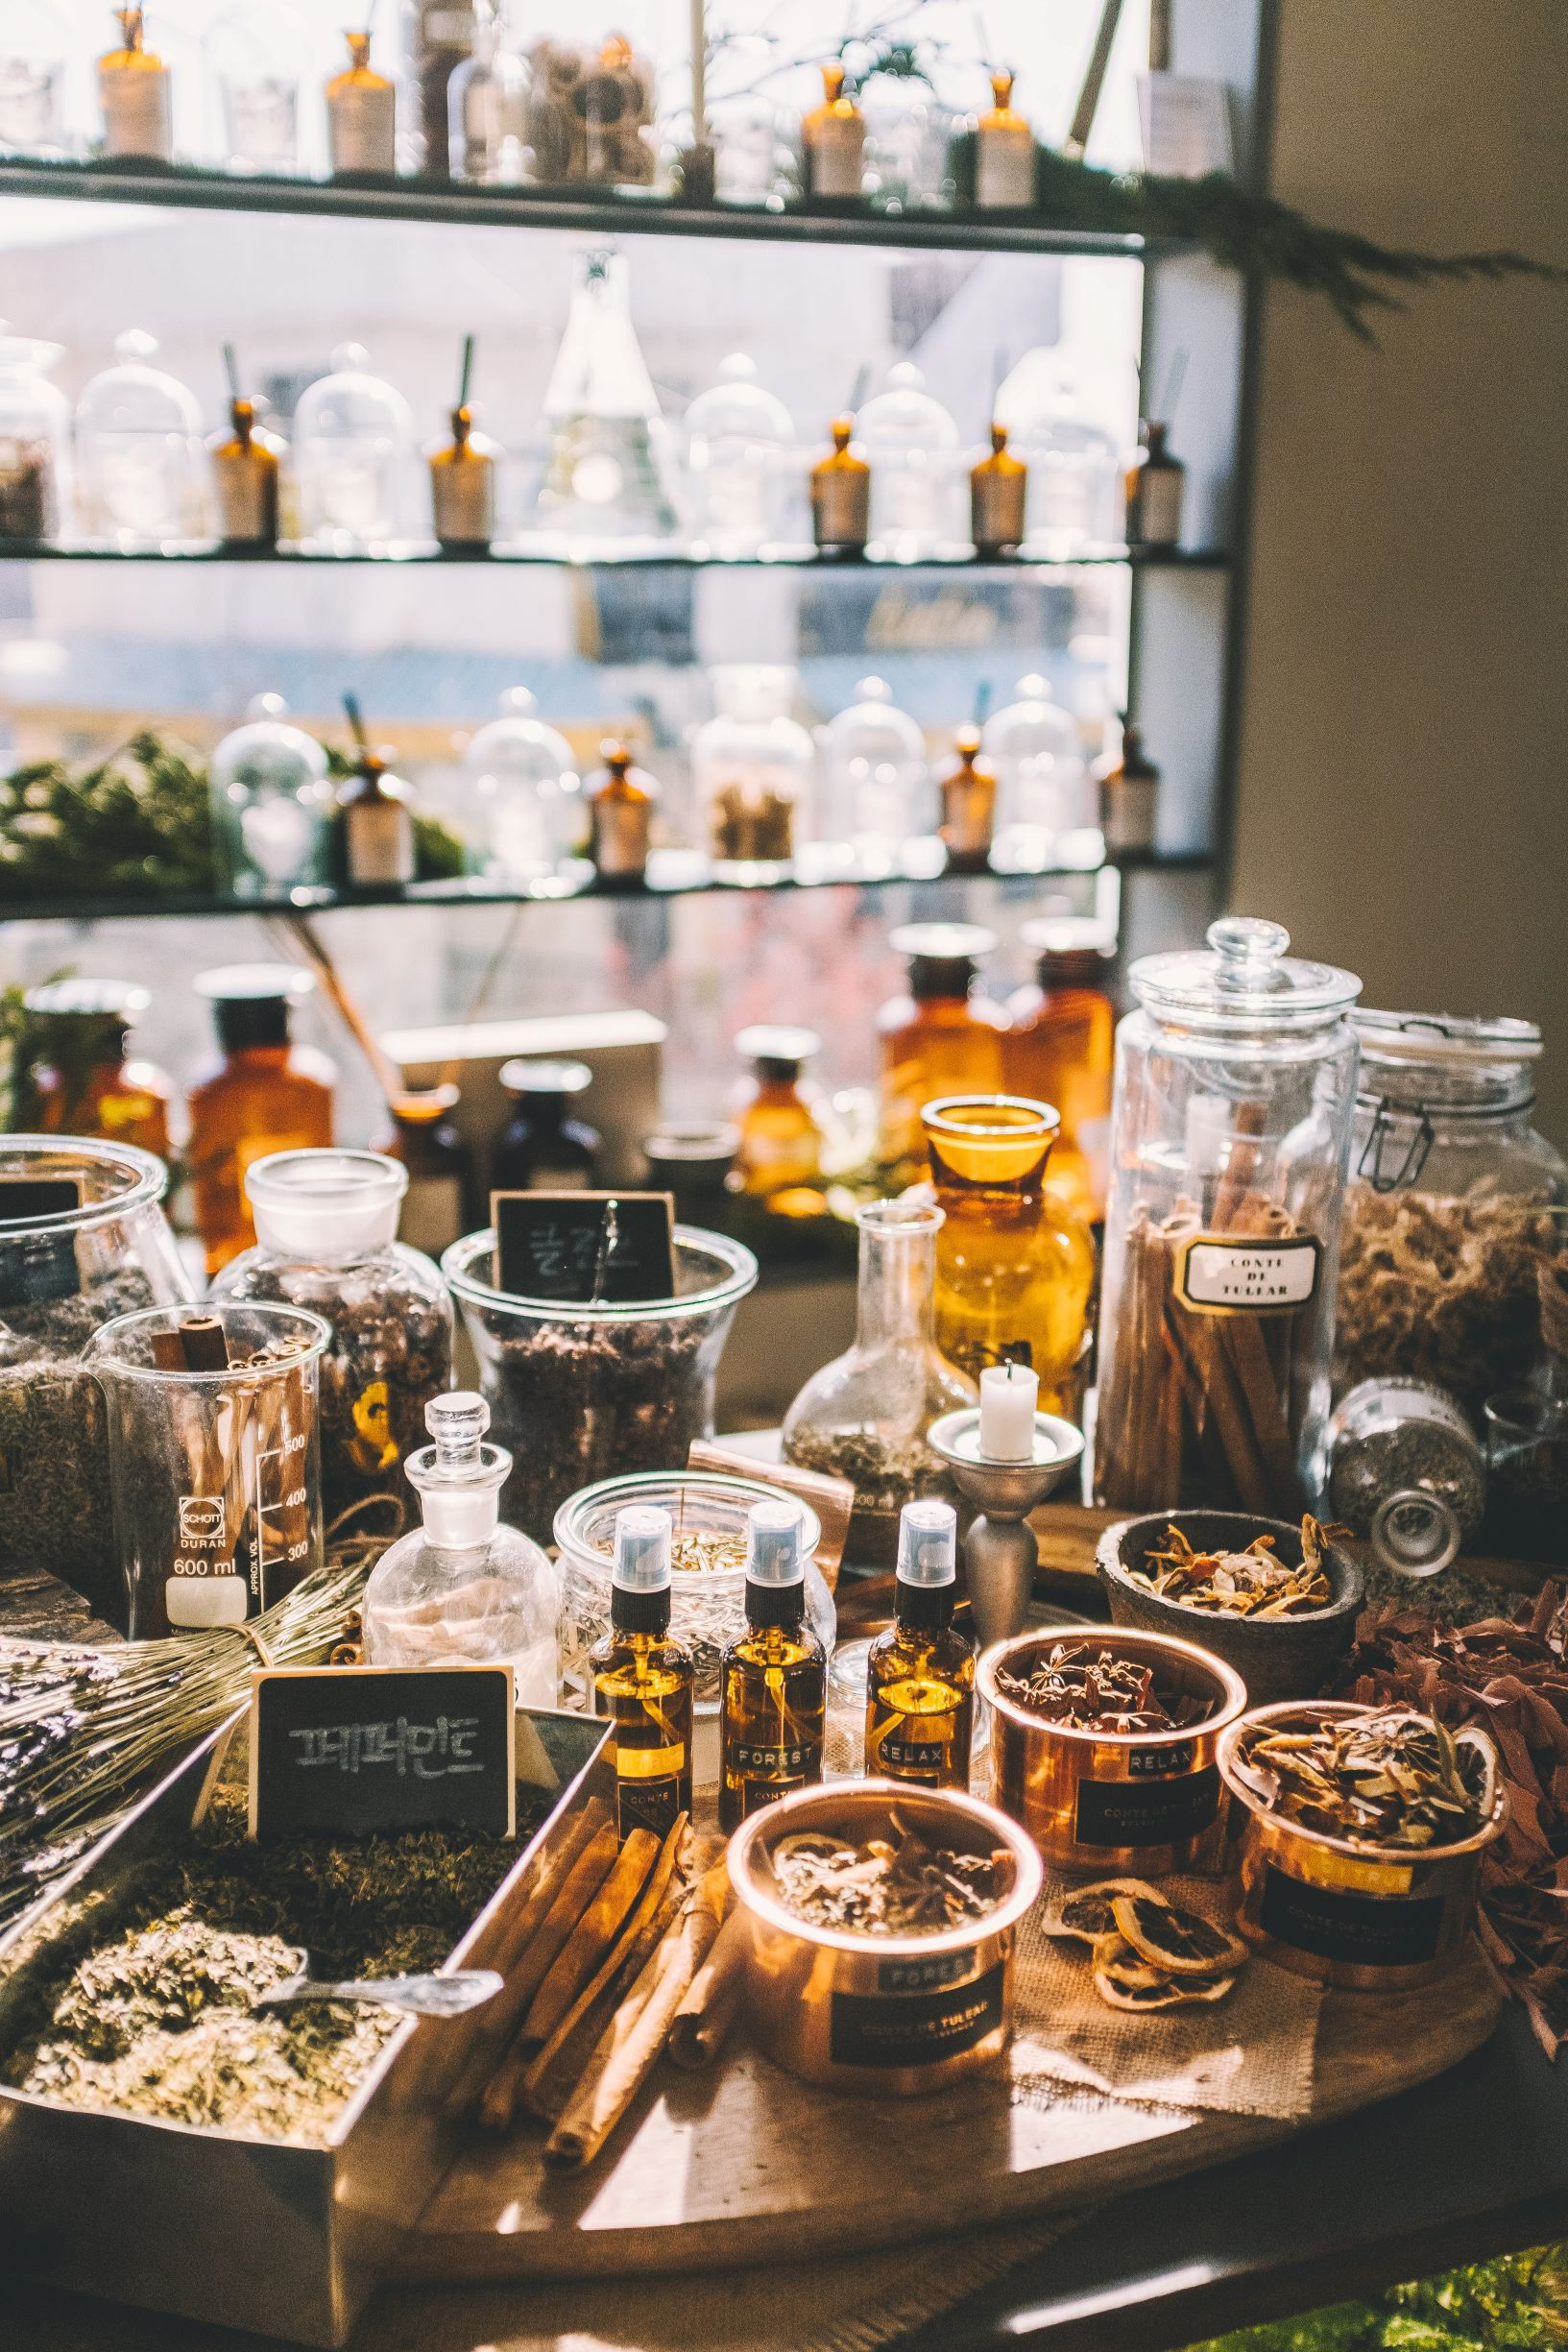 Chinese herbal medicines in jars and bowls